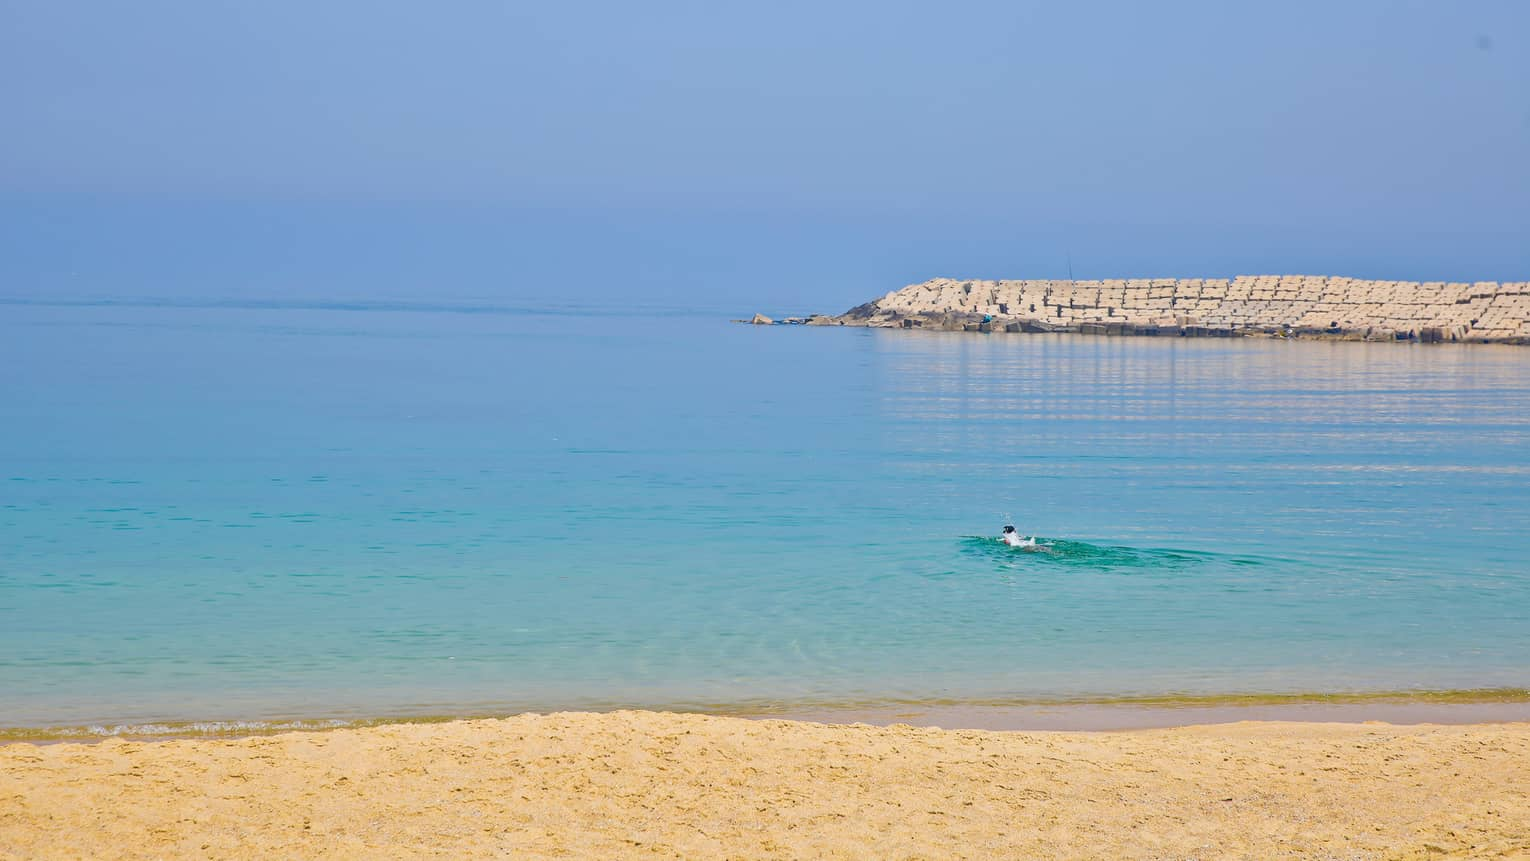 Swimmer in blue-green waters of Mediterranean Sea beyond yellow sand beach, brick barrier in background